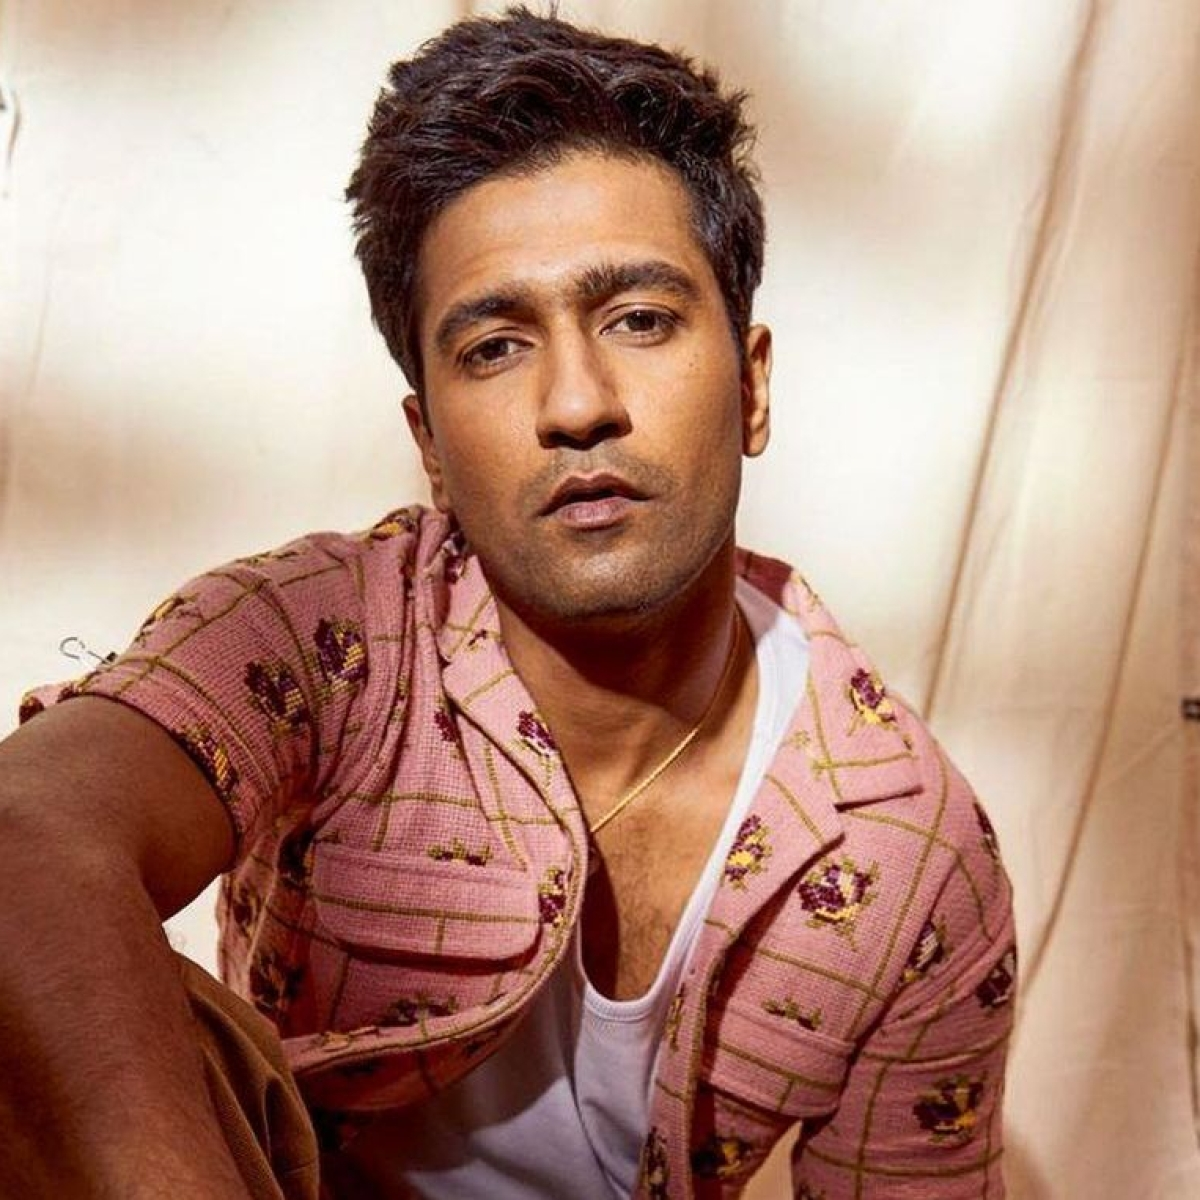 After Bhumi Pednekar, her 'Mr Lele' co-star Vicky Kaushal tests positive for COVID-19